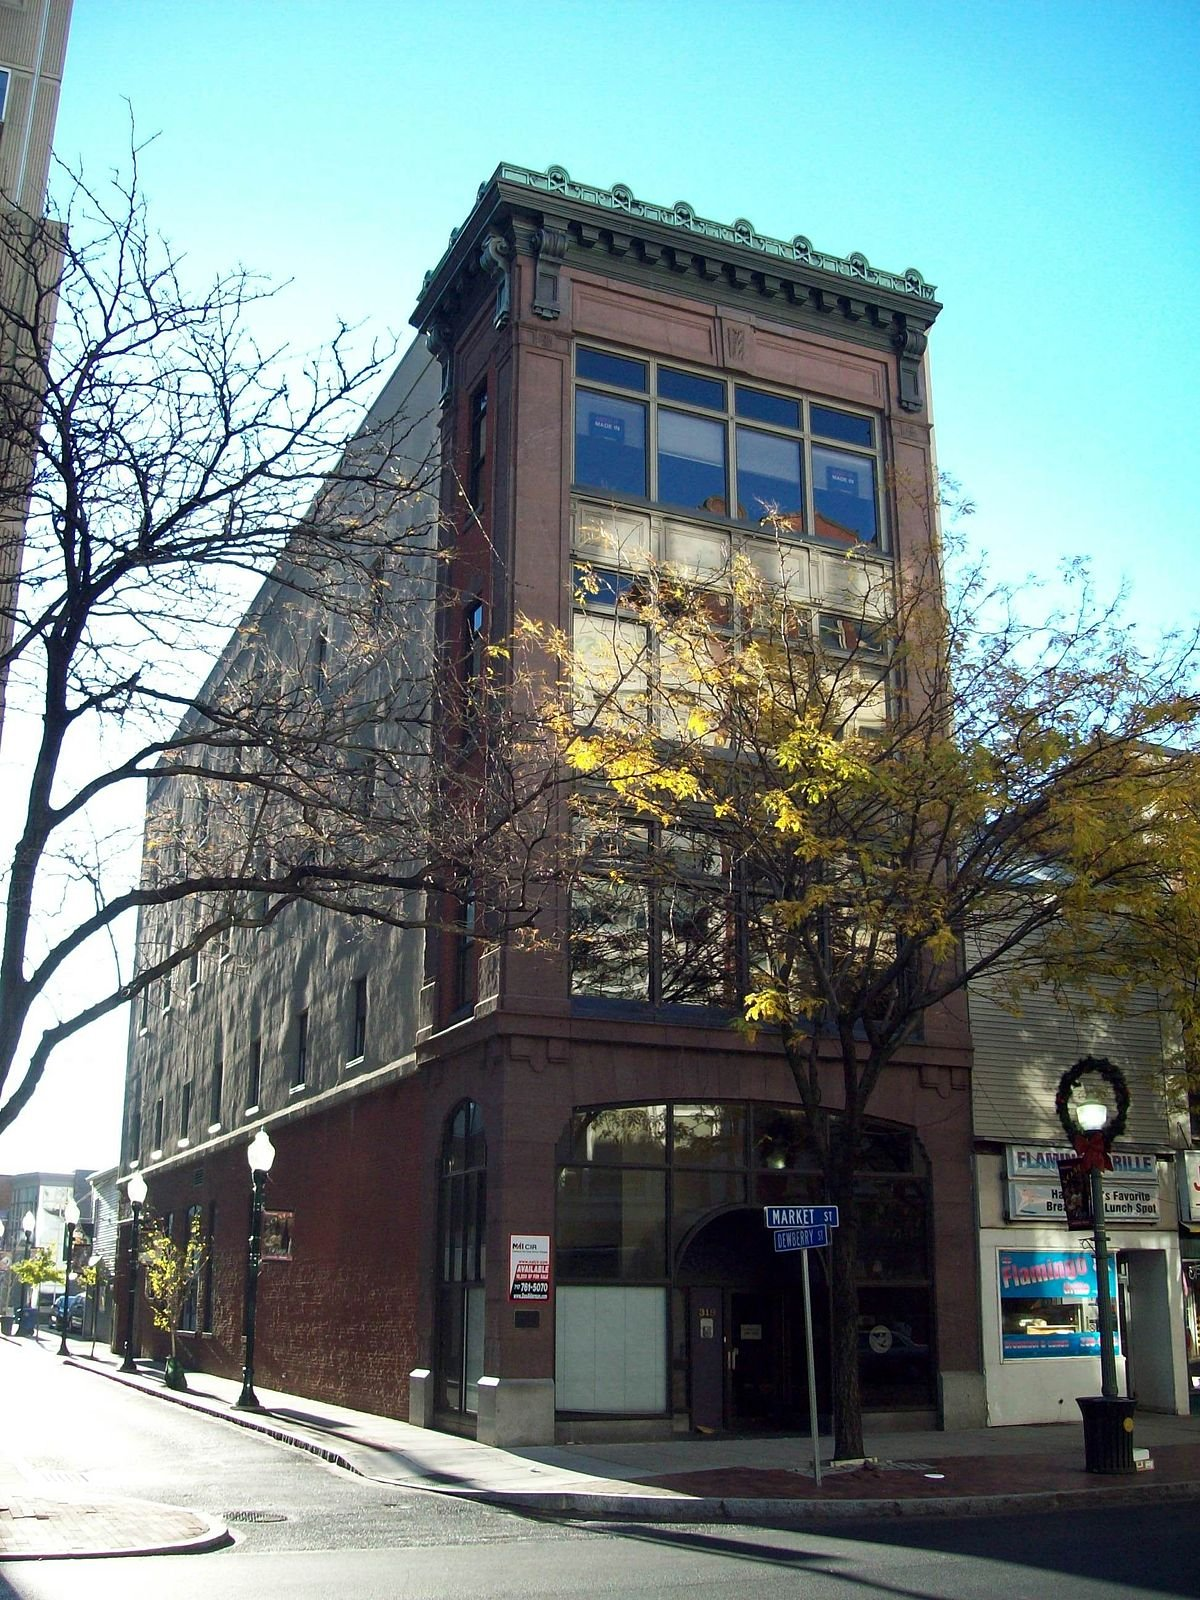 The William Seel Building was built in 1912-1913.